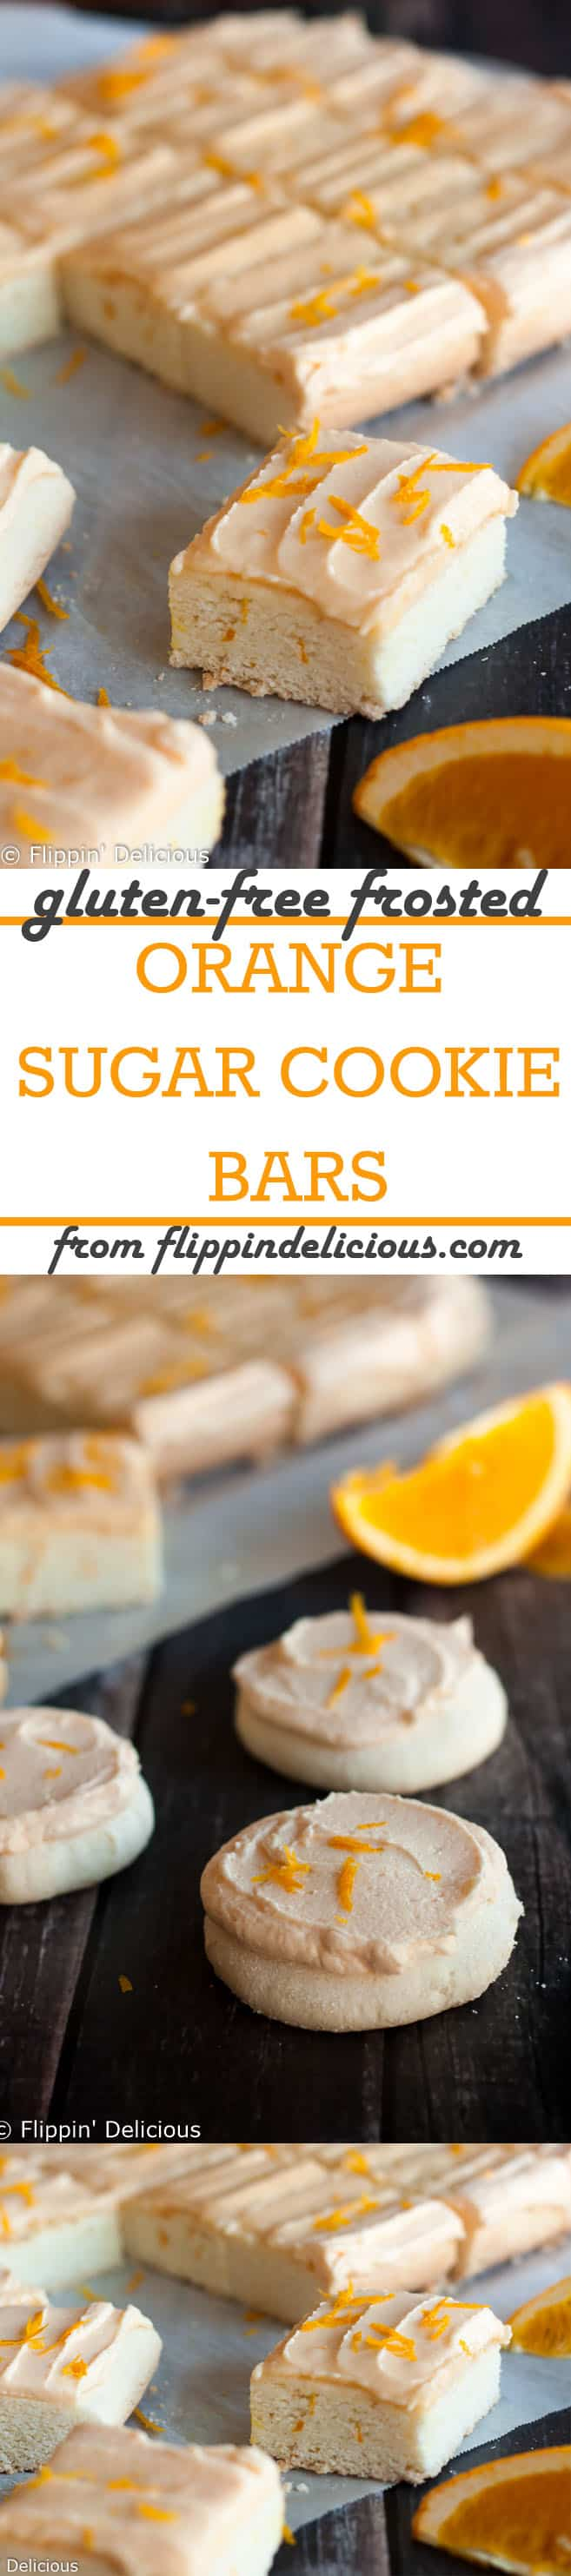 Gluten Free Soft Orange Frosted Sugar Cookie Bars are easy to make and have a vibrant, bright burst of orange citrus flavor. These gluten free frosted sugar cookie bars are soft and cakey, and you can easily make them into cut-outs or drop cookies too!